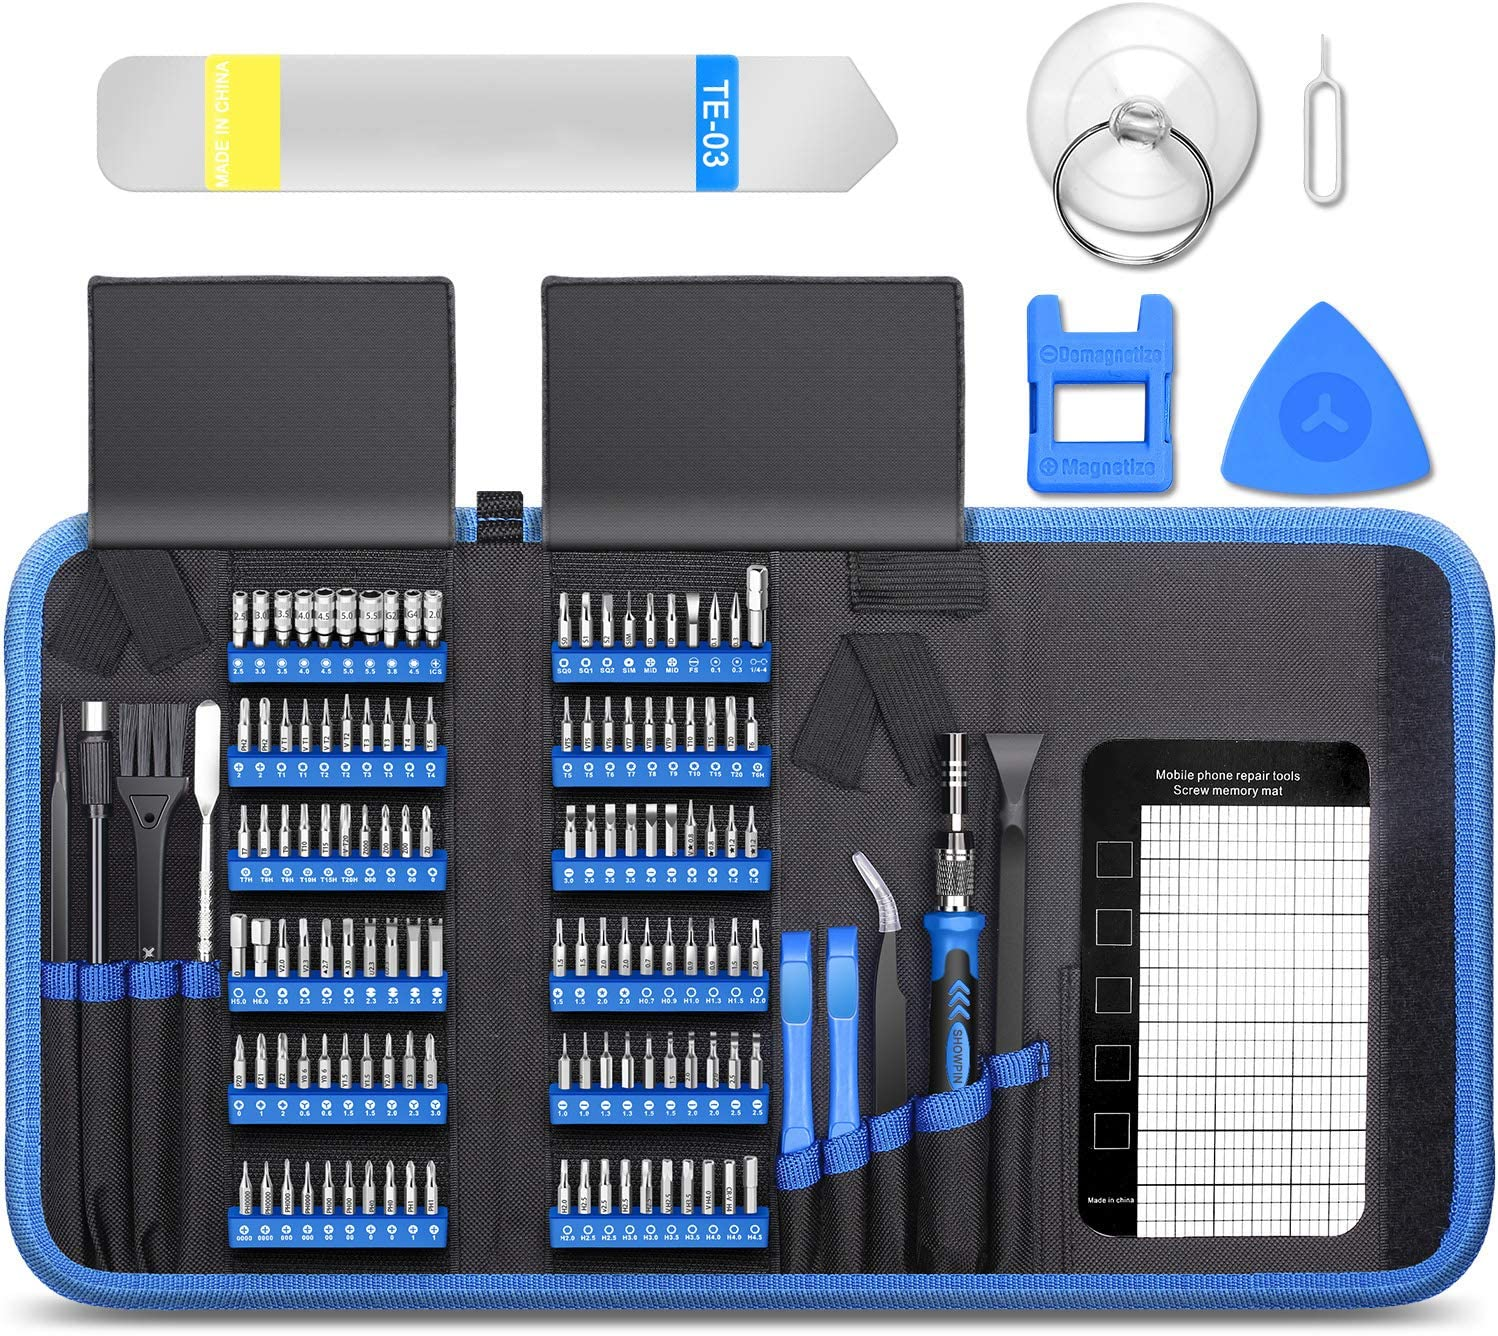 140 IN 1 Precision Magnetic Screwdriver Set for Computer, Professional Screen Repair Kit for iPhone, Samsung, Small Impact Screw Driver Set for HP Laptop, Asus PC, Glass,Ps4, Electronic DIY Hand Tools: Home Improvement